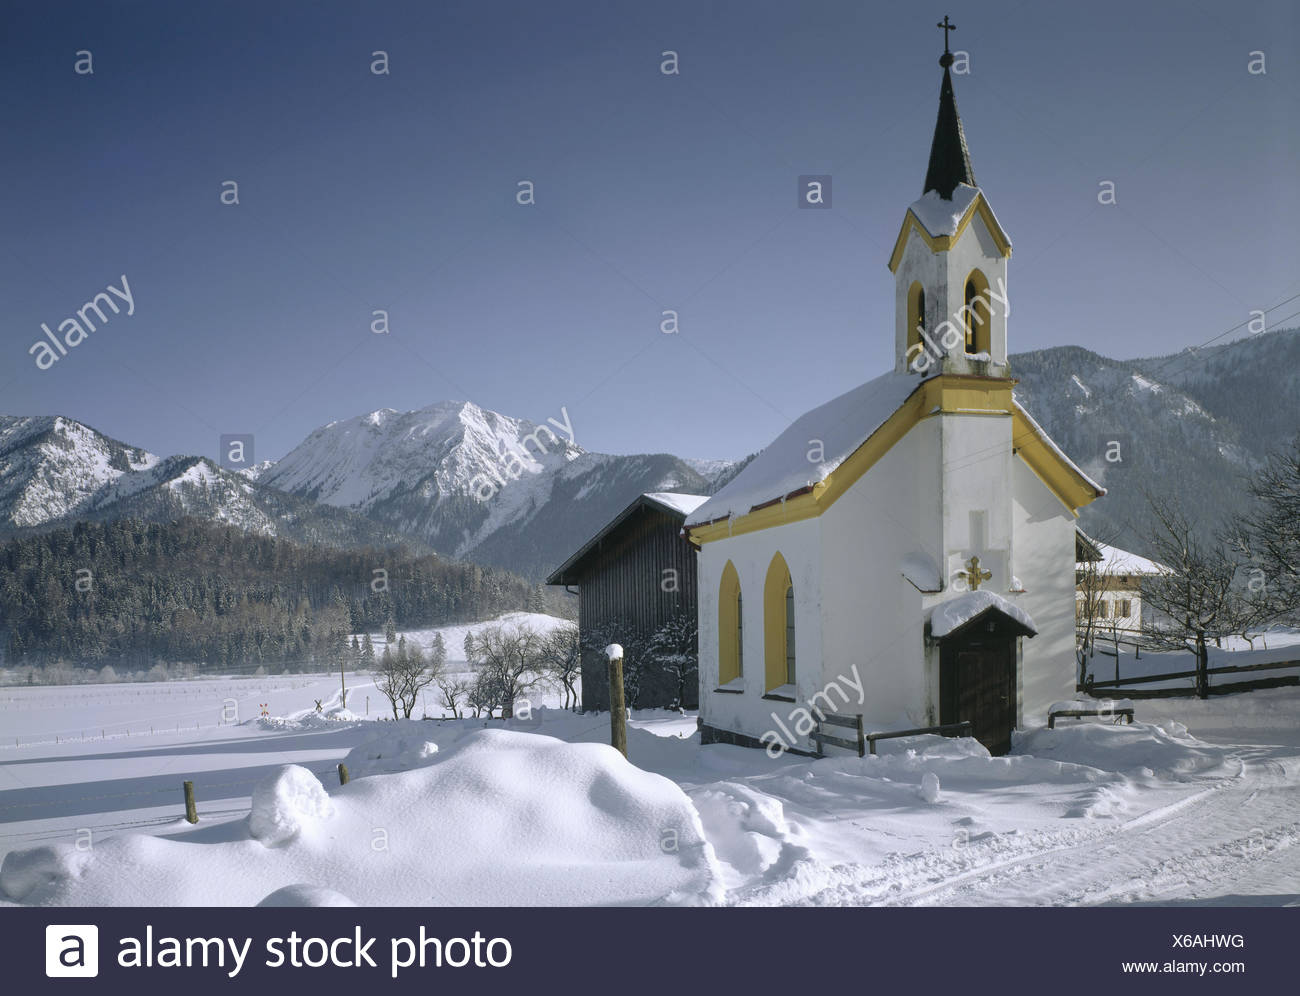 Germany, Upper Bavaria, Bayrischzell, band, winter, Europe, Bavaria, mountain landscape, snow, church, faith, religion, winter scenery, snow, mountains, summits, snowy, - Stock Image